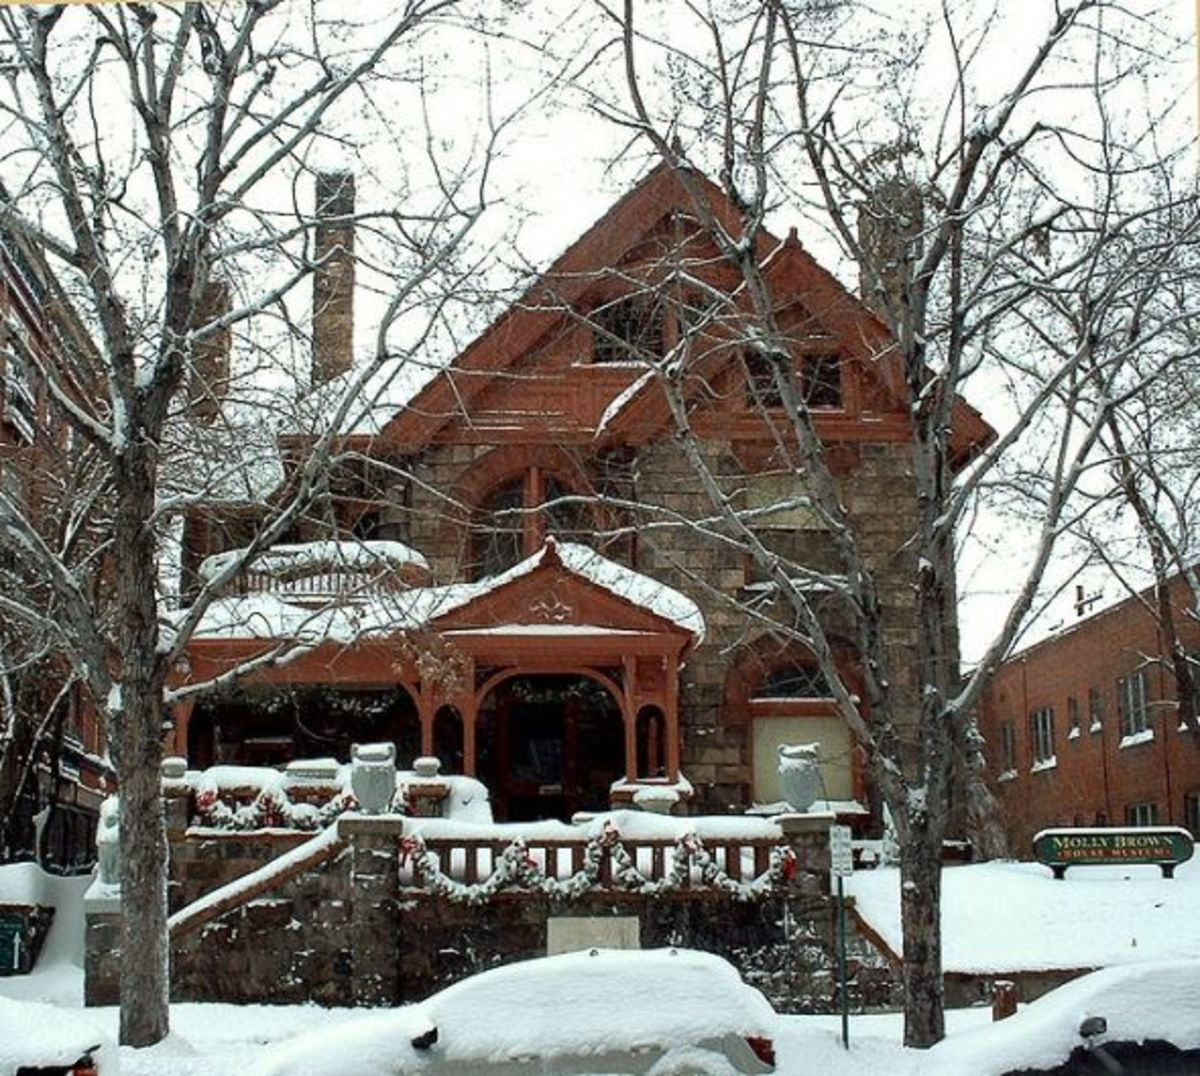 The Molly Brown House in Denver, Colorado --Wikimedia Commons